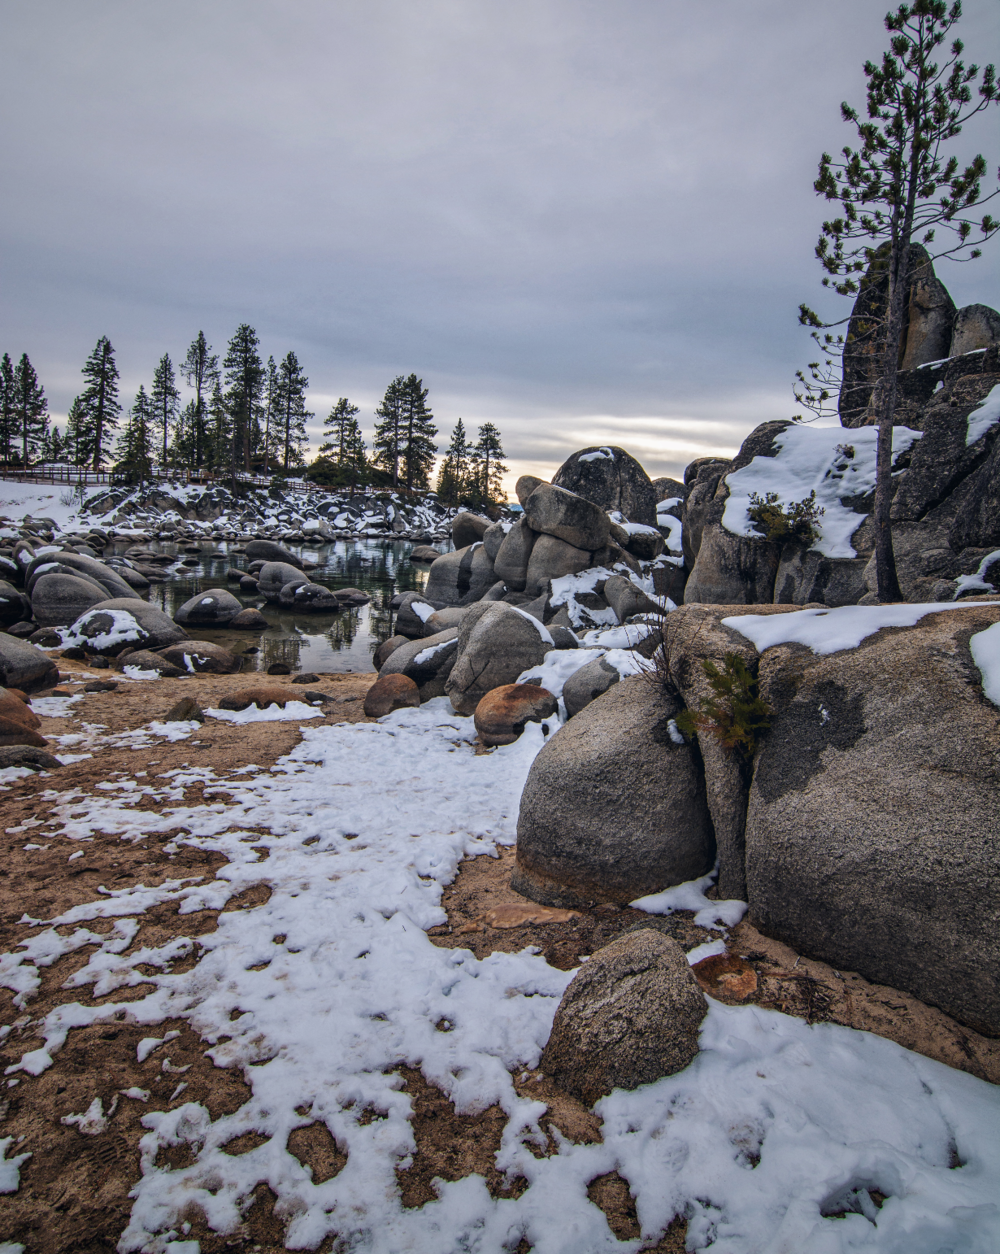 Even though it doesn't snow in Sacramento, I love the fact that you are still able to drive close enough to see the snow! I love Tahoe's scenery.  What's your favorite spot to explore in Tahoe? I'm always looking for adventure and new places to shoot!